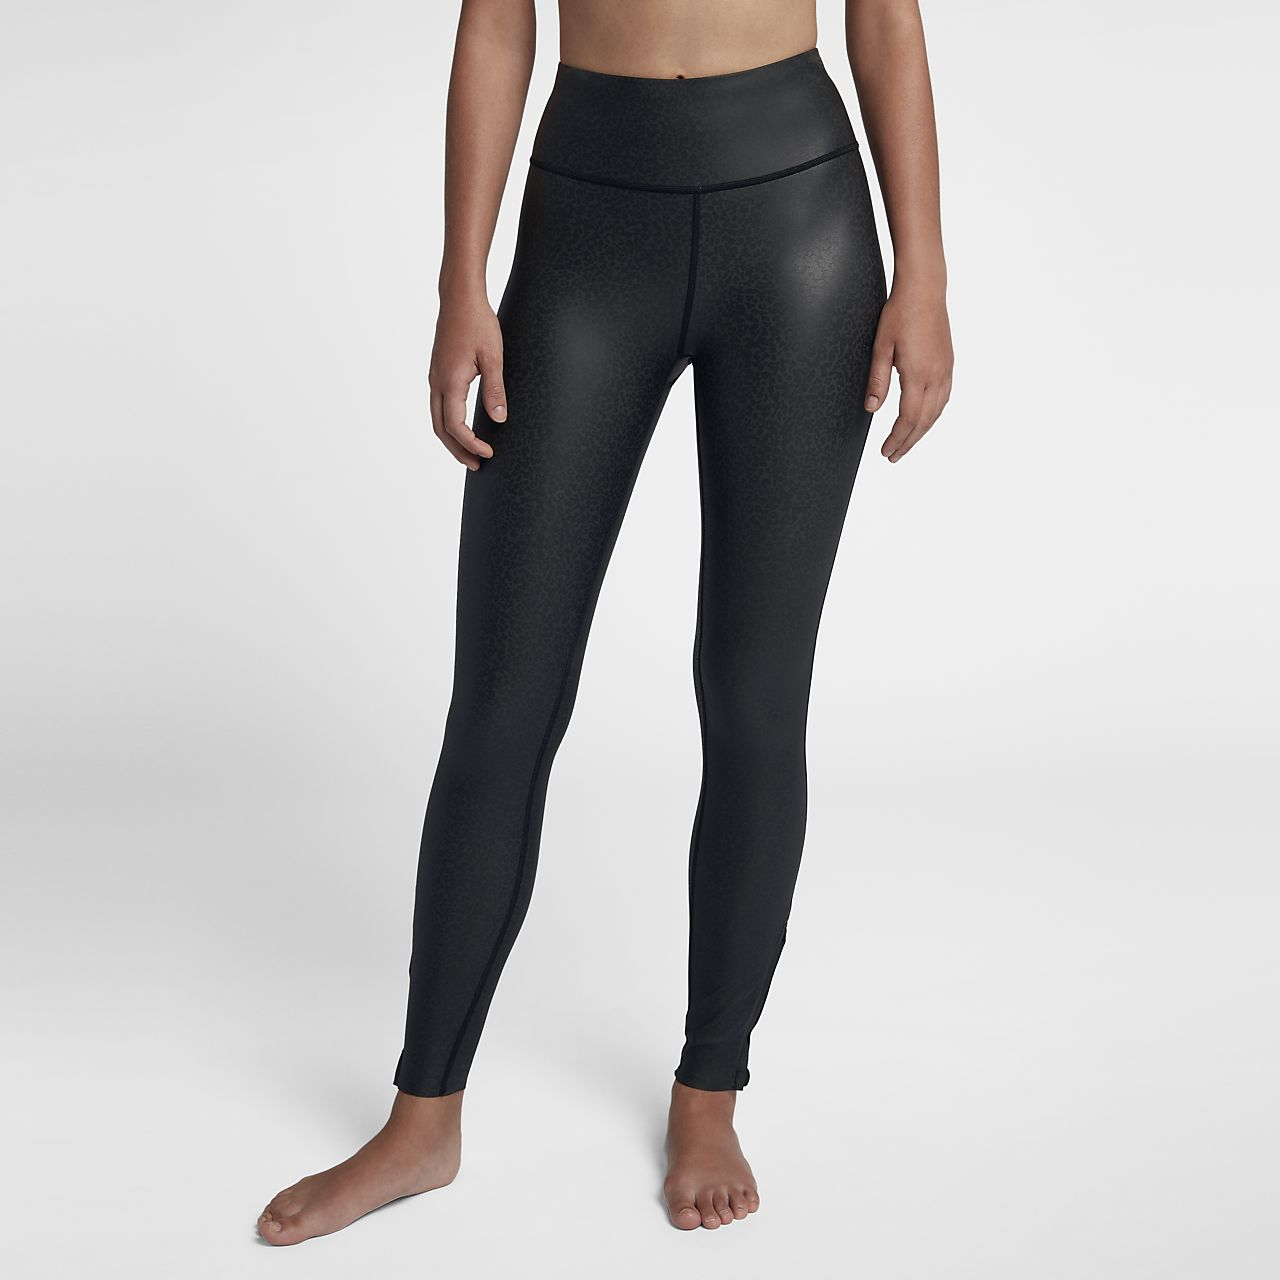 Hurley Advantage Plus Windskin Women's Leggings